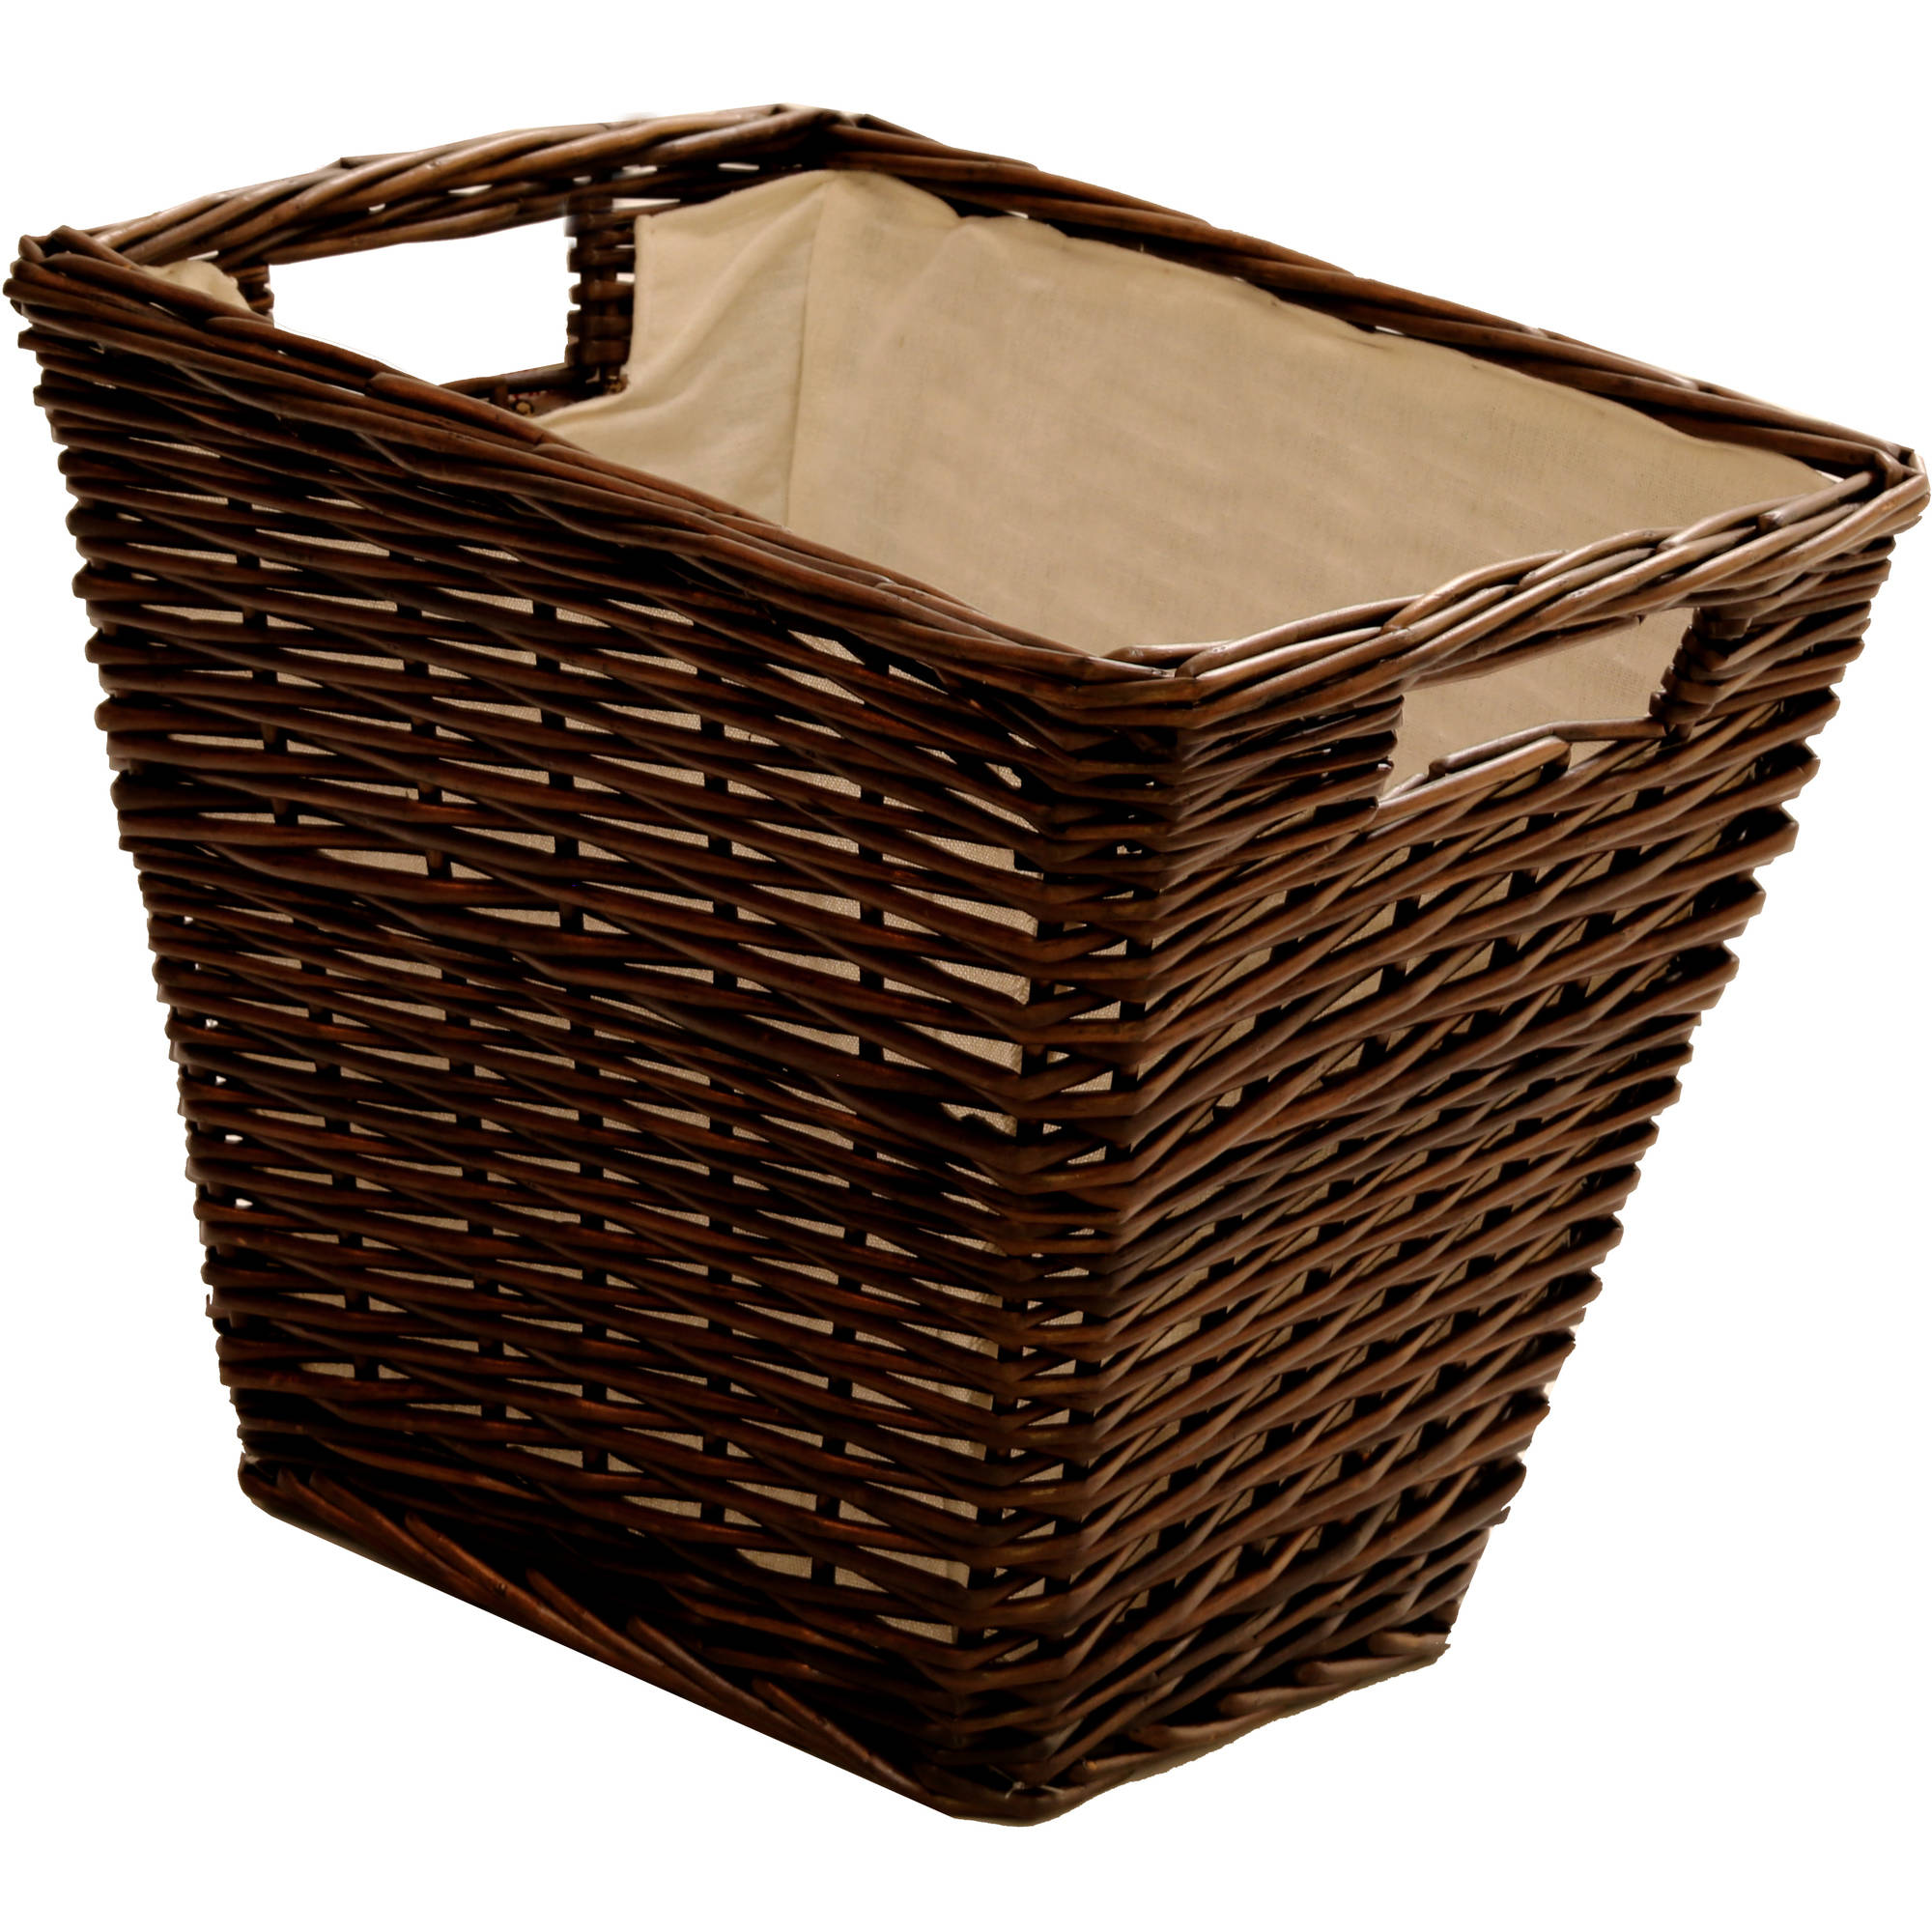 Better Homes and Gardens Willow Cube Storage Basket